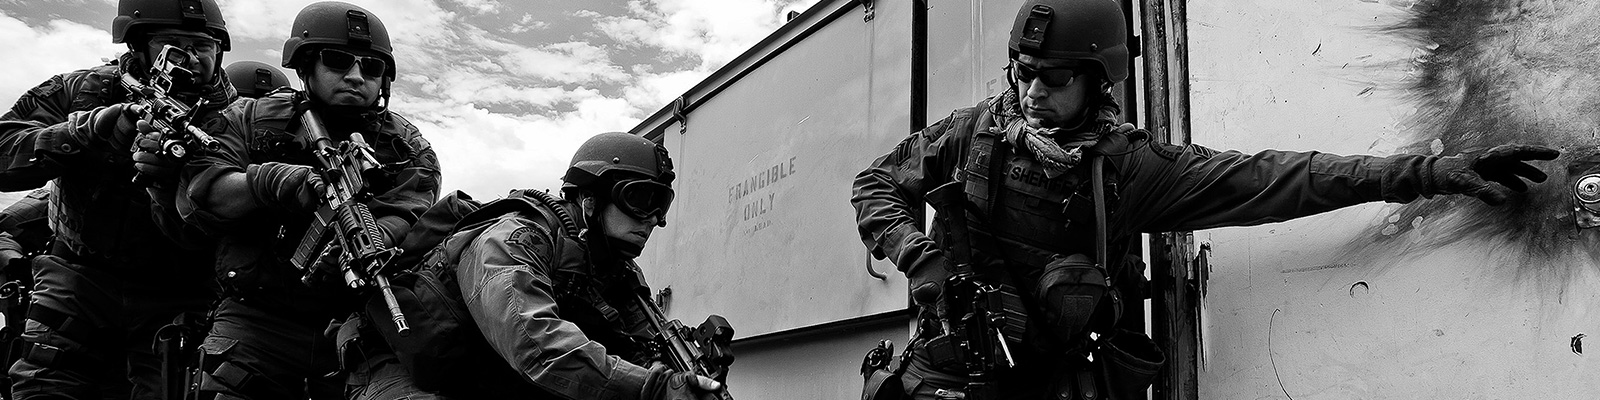 Swat Tactical Entry